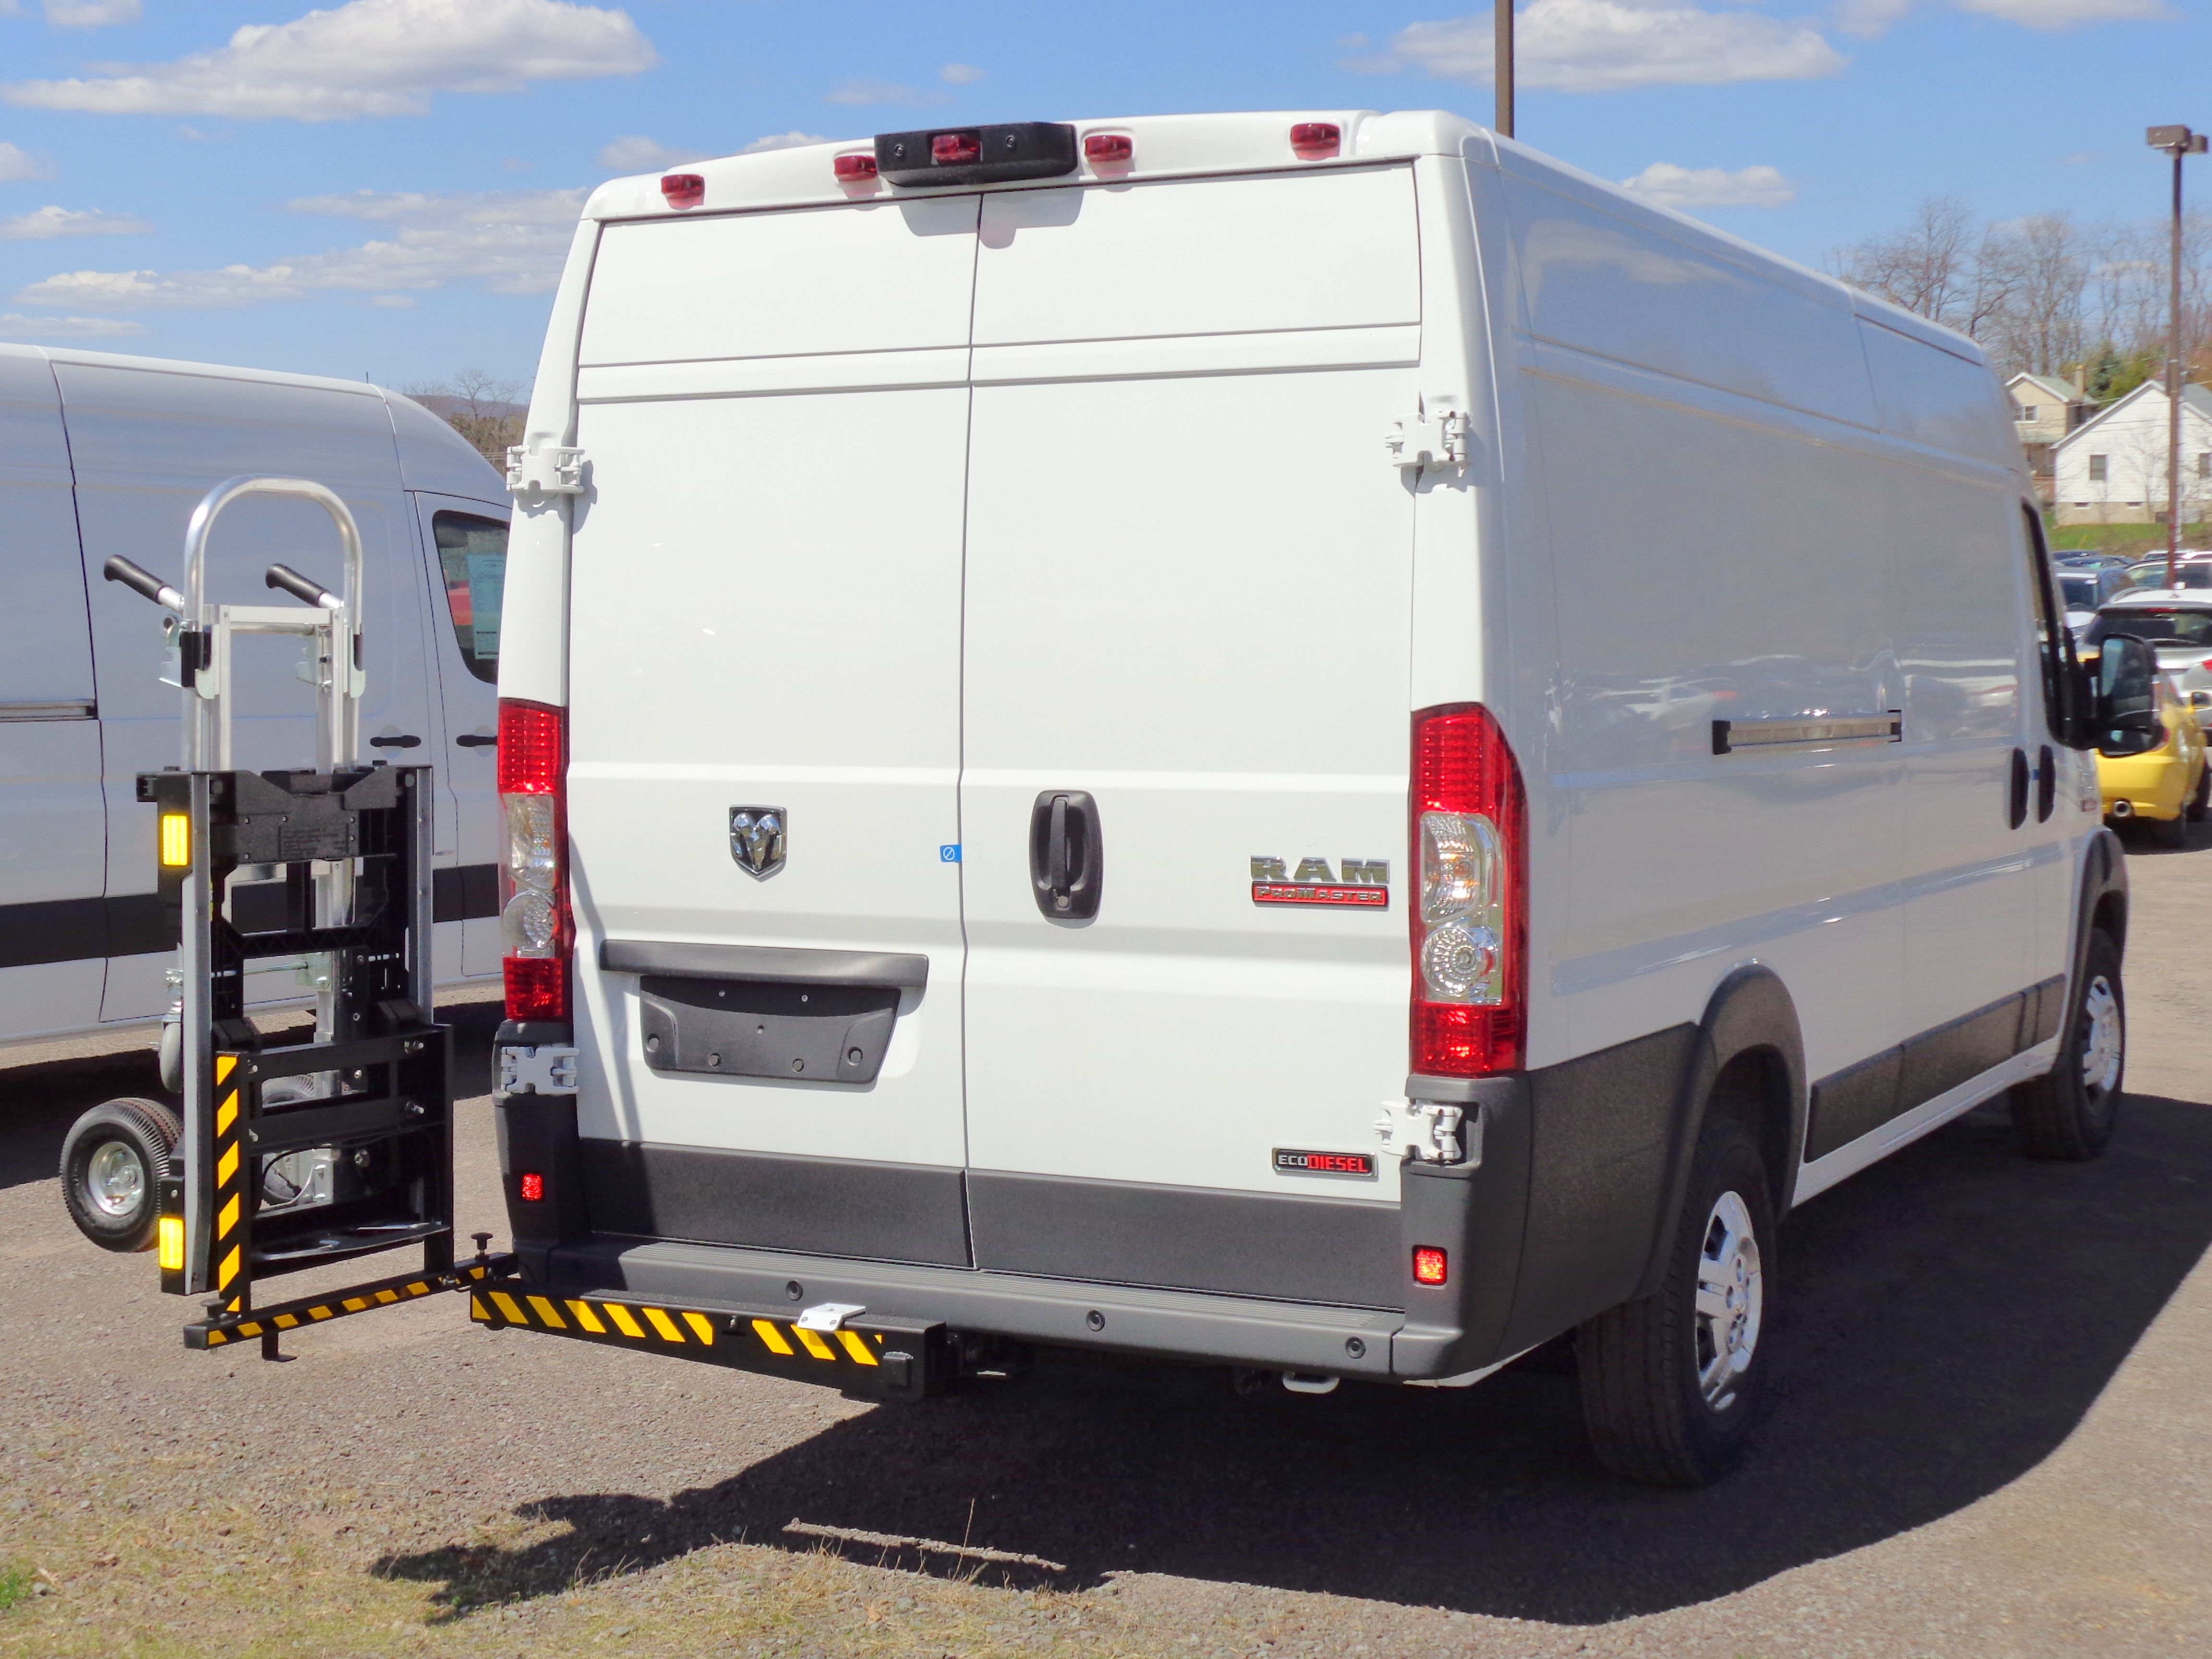 Dodge Promaster Commercial Cargo Van Equipped With Hts Systems Hts 20sdp Ultra Rack Hand Cart Carrier Rack Hts Systems Comme Truck Transport Hand Trucks Van